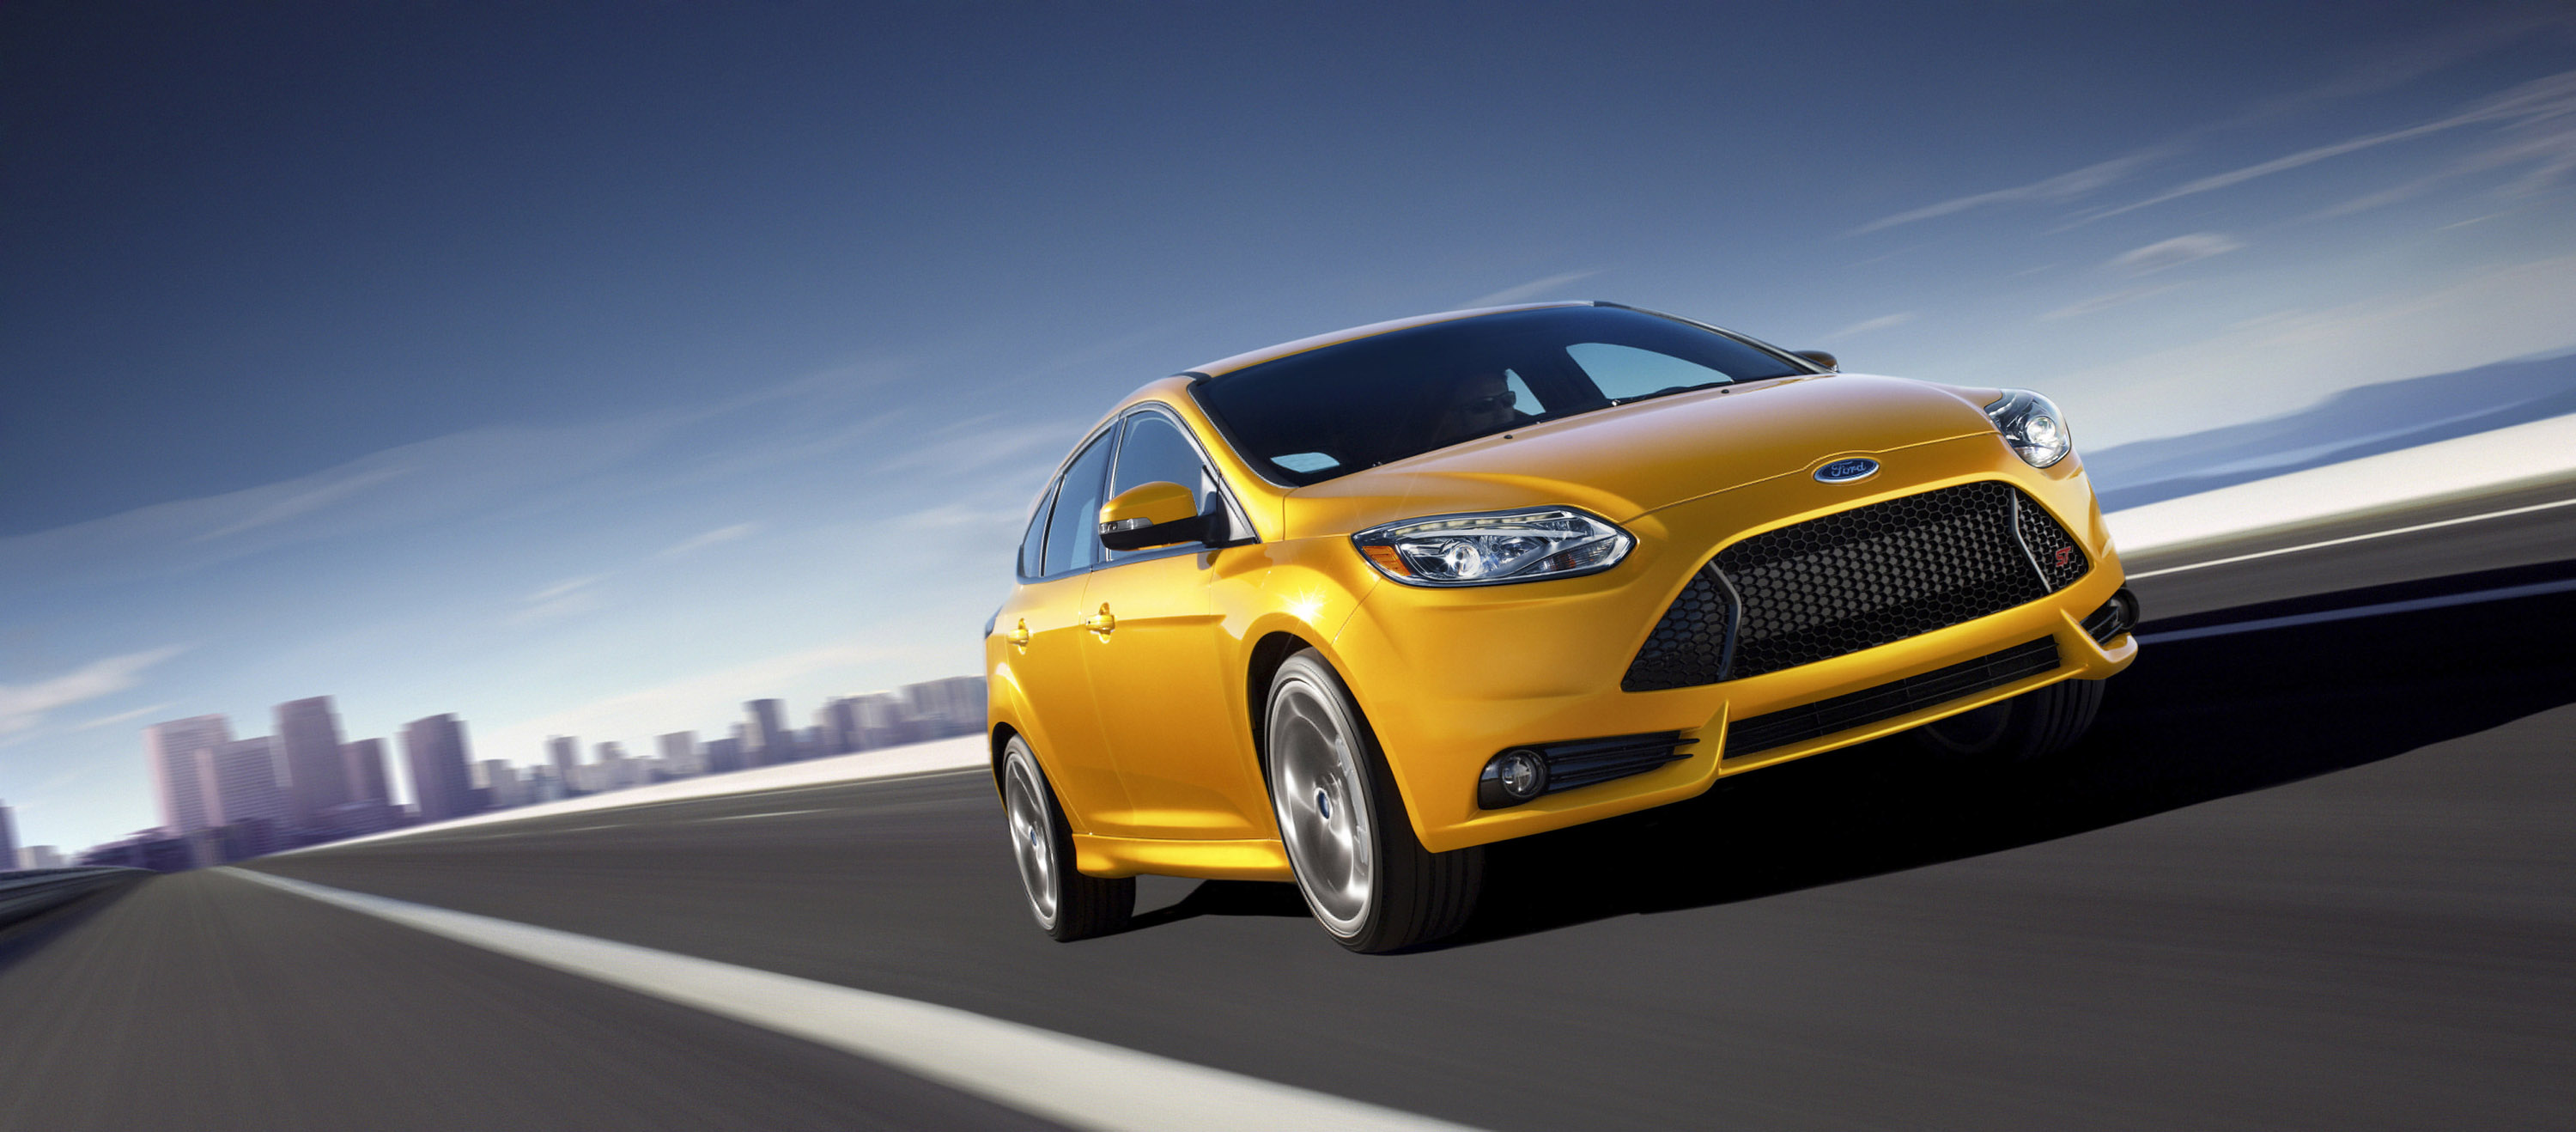 2013 ford focus st with factory overboost turbo engine. Black Bedroom Furniture Sets. Home Design Ideas